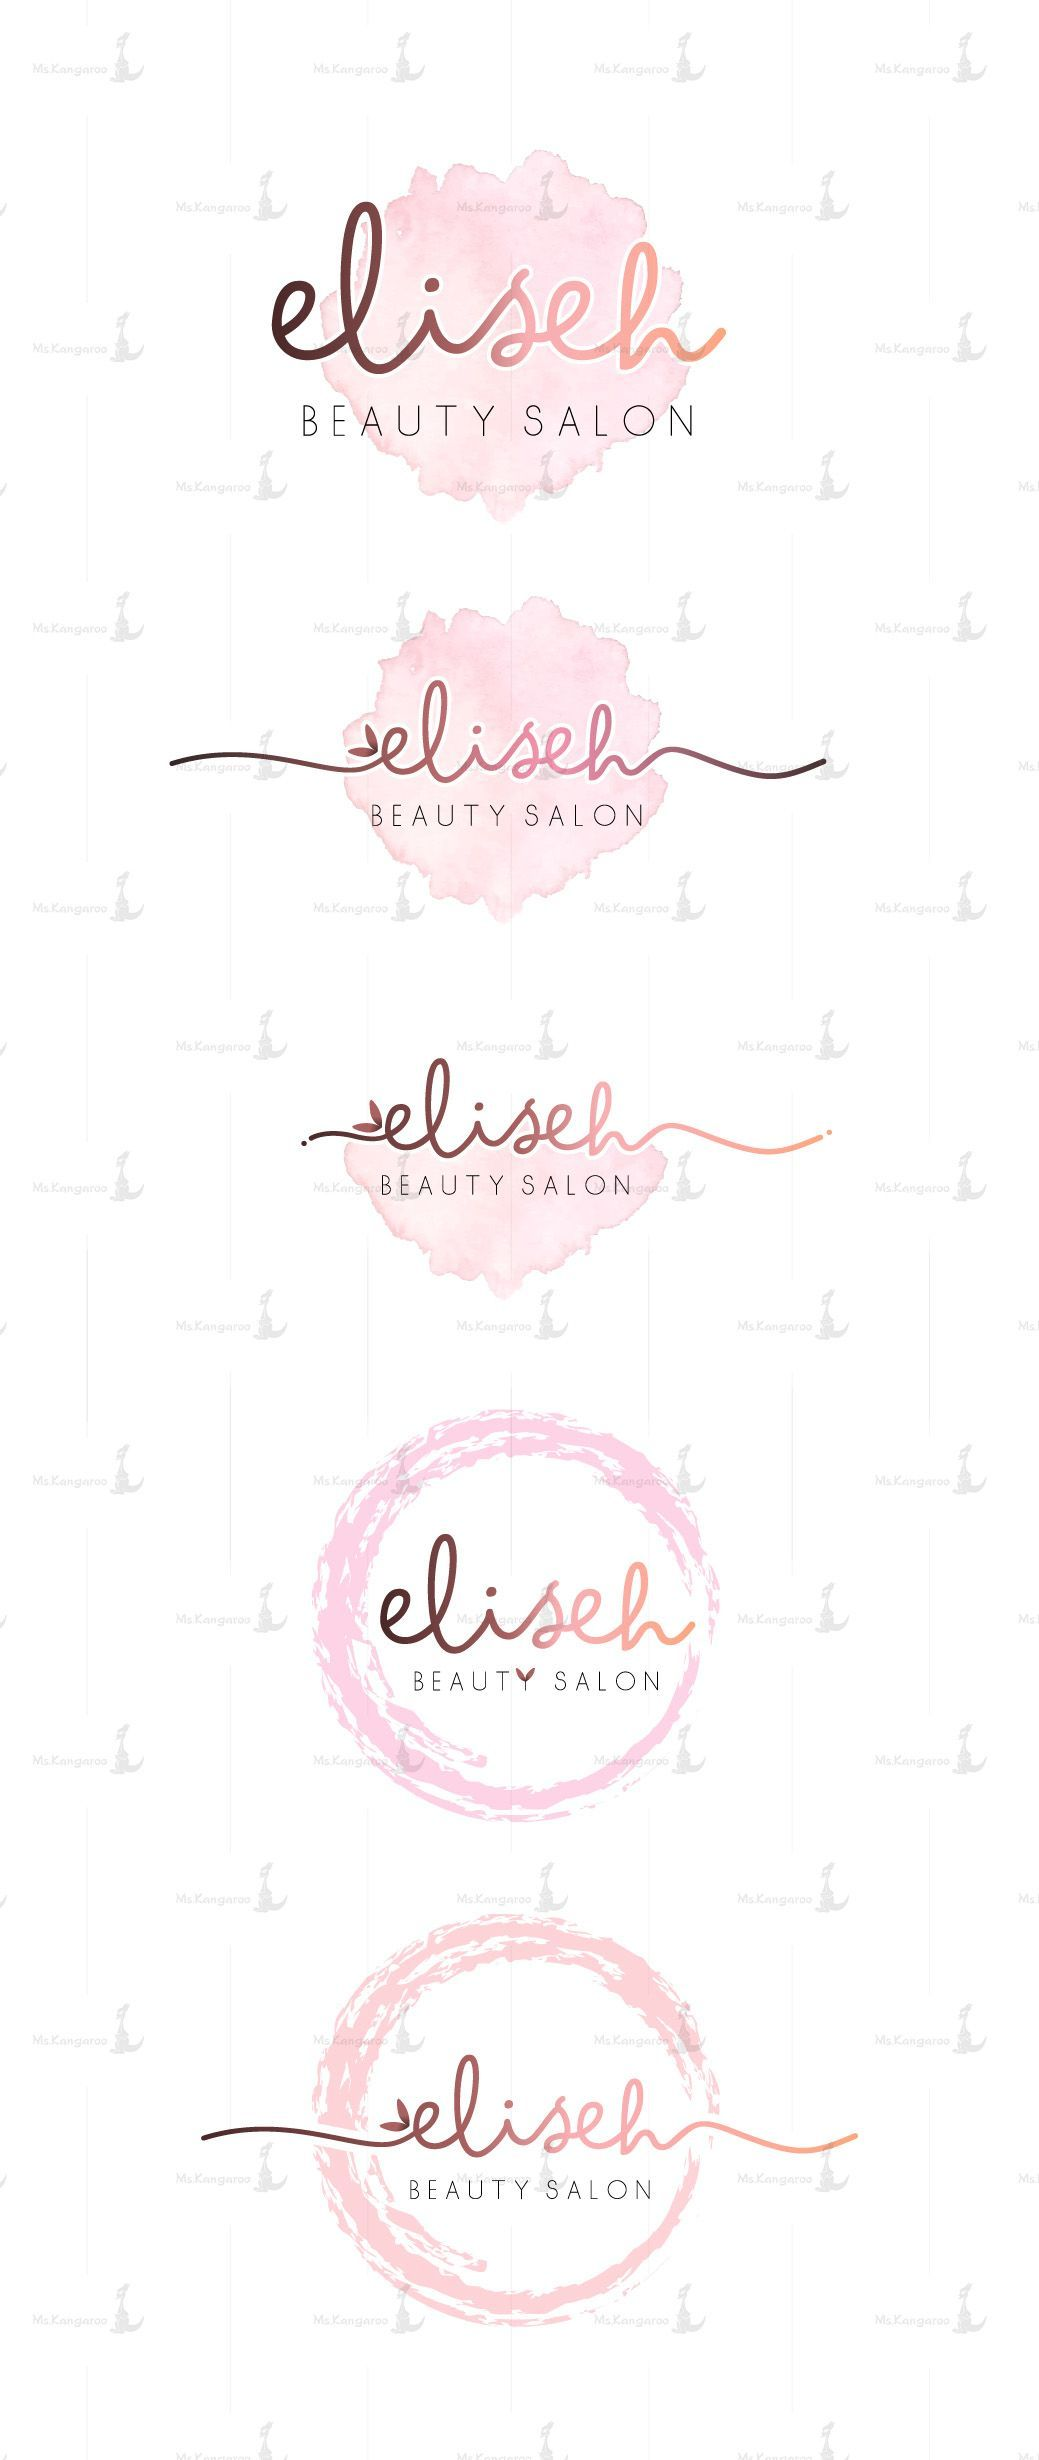 Illustrator Logo Digital Art Brandbook Brand Create Idea